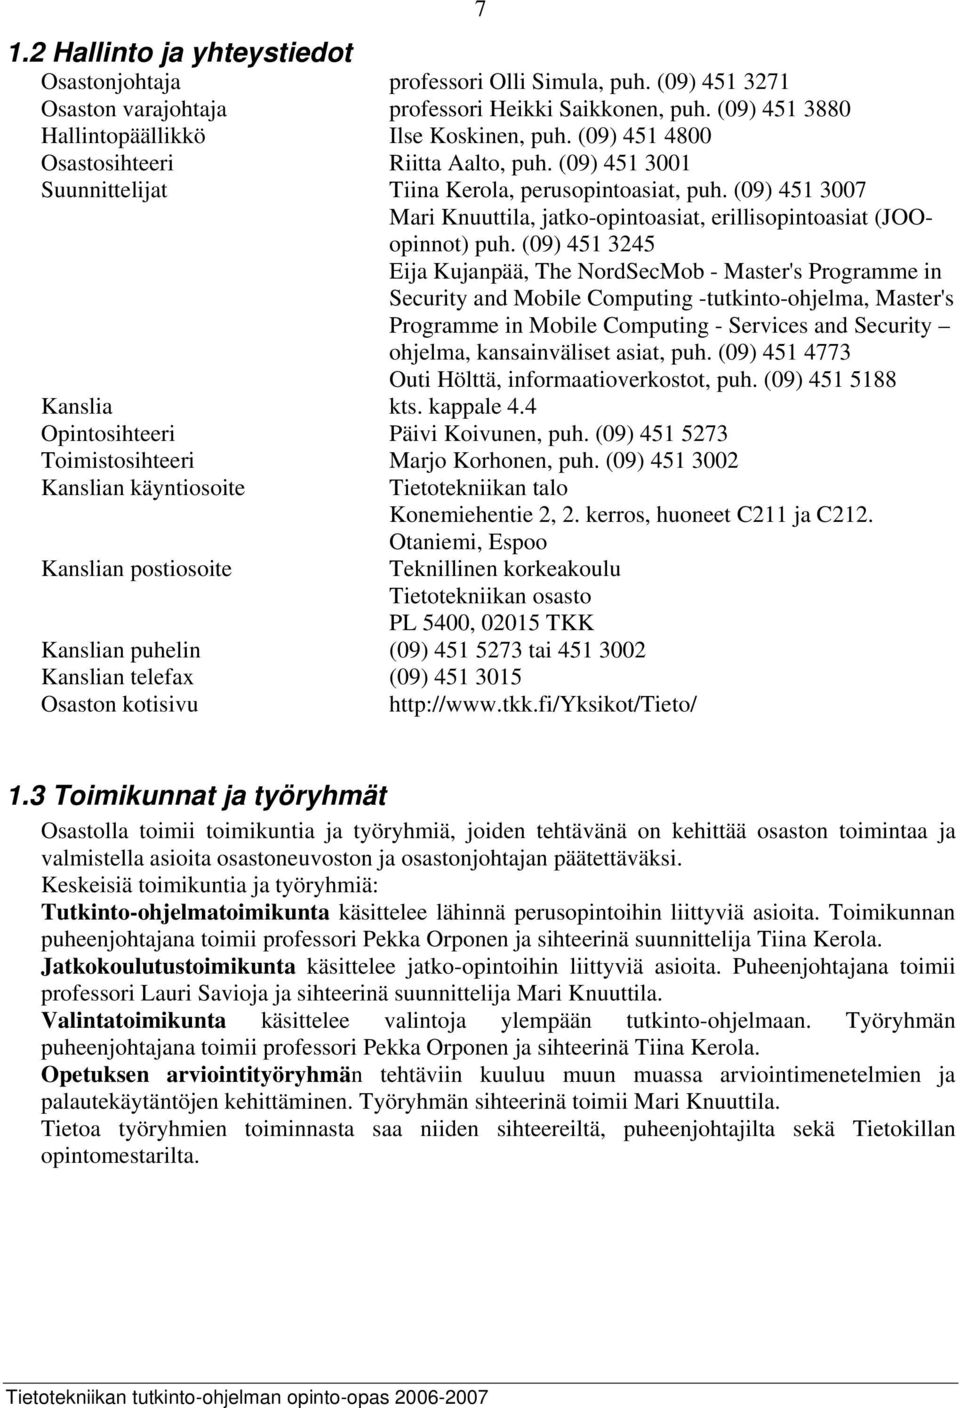 (09) 451 3245 Eija Kujanpää, The NordSecMob - Master's Programme in Security and Mobile Computing -tutkinto-ohjelma, Master's Programme in Mobile Computing - Services and Security ohjelma,